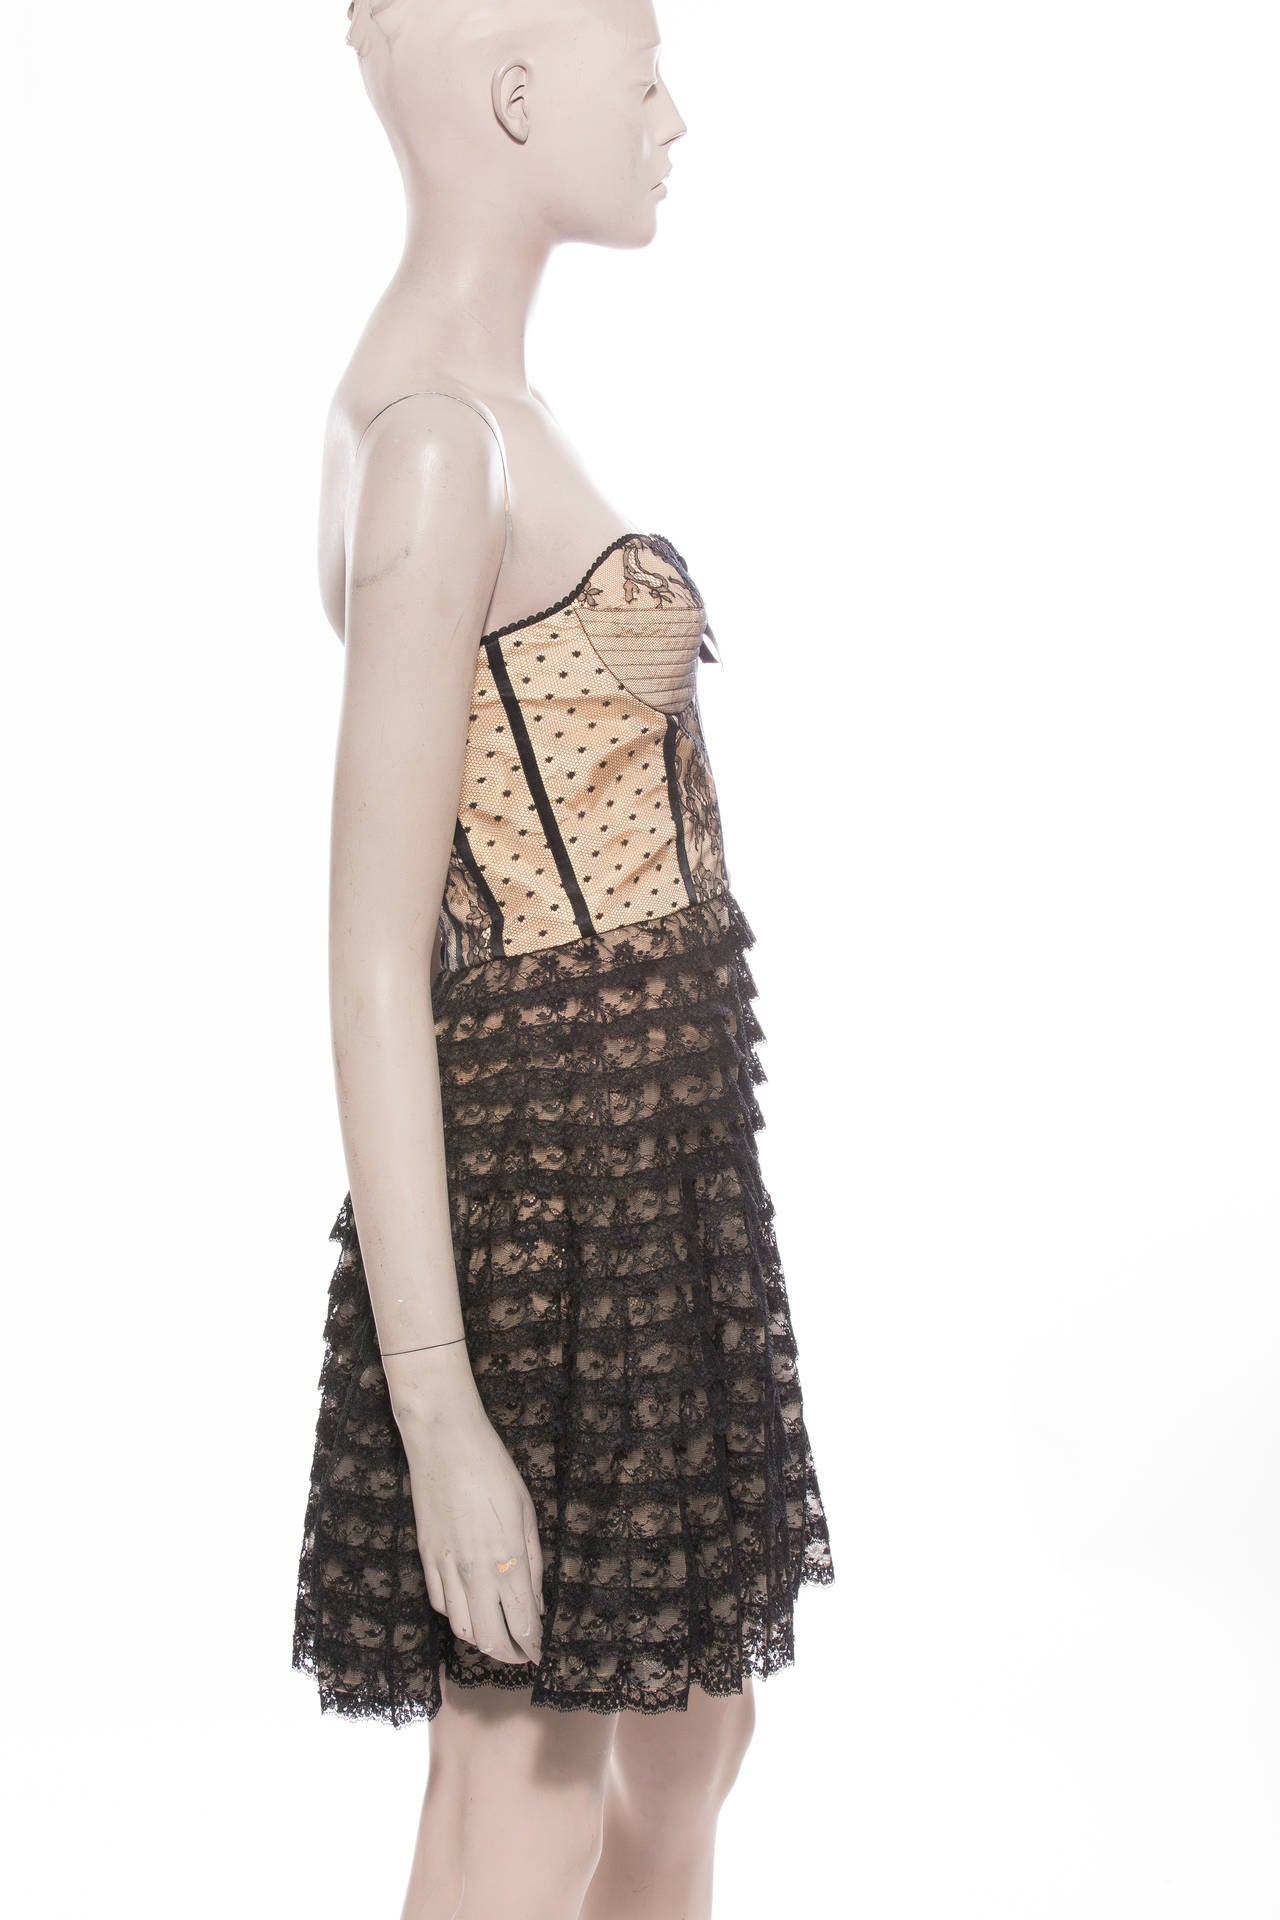 Christian Dior By John Galliano Strapless Lace Dress 4